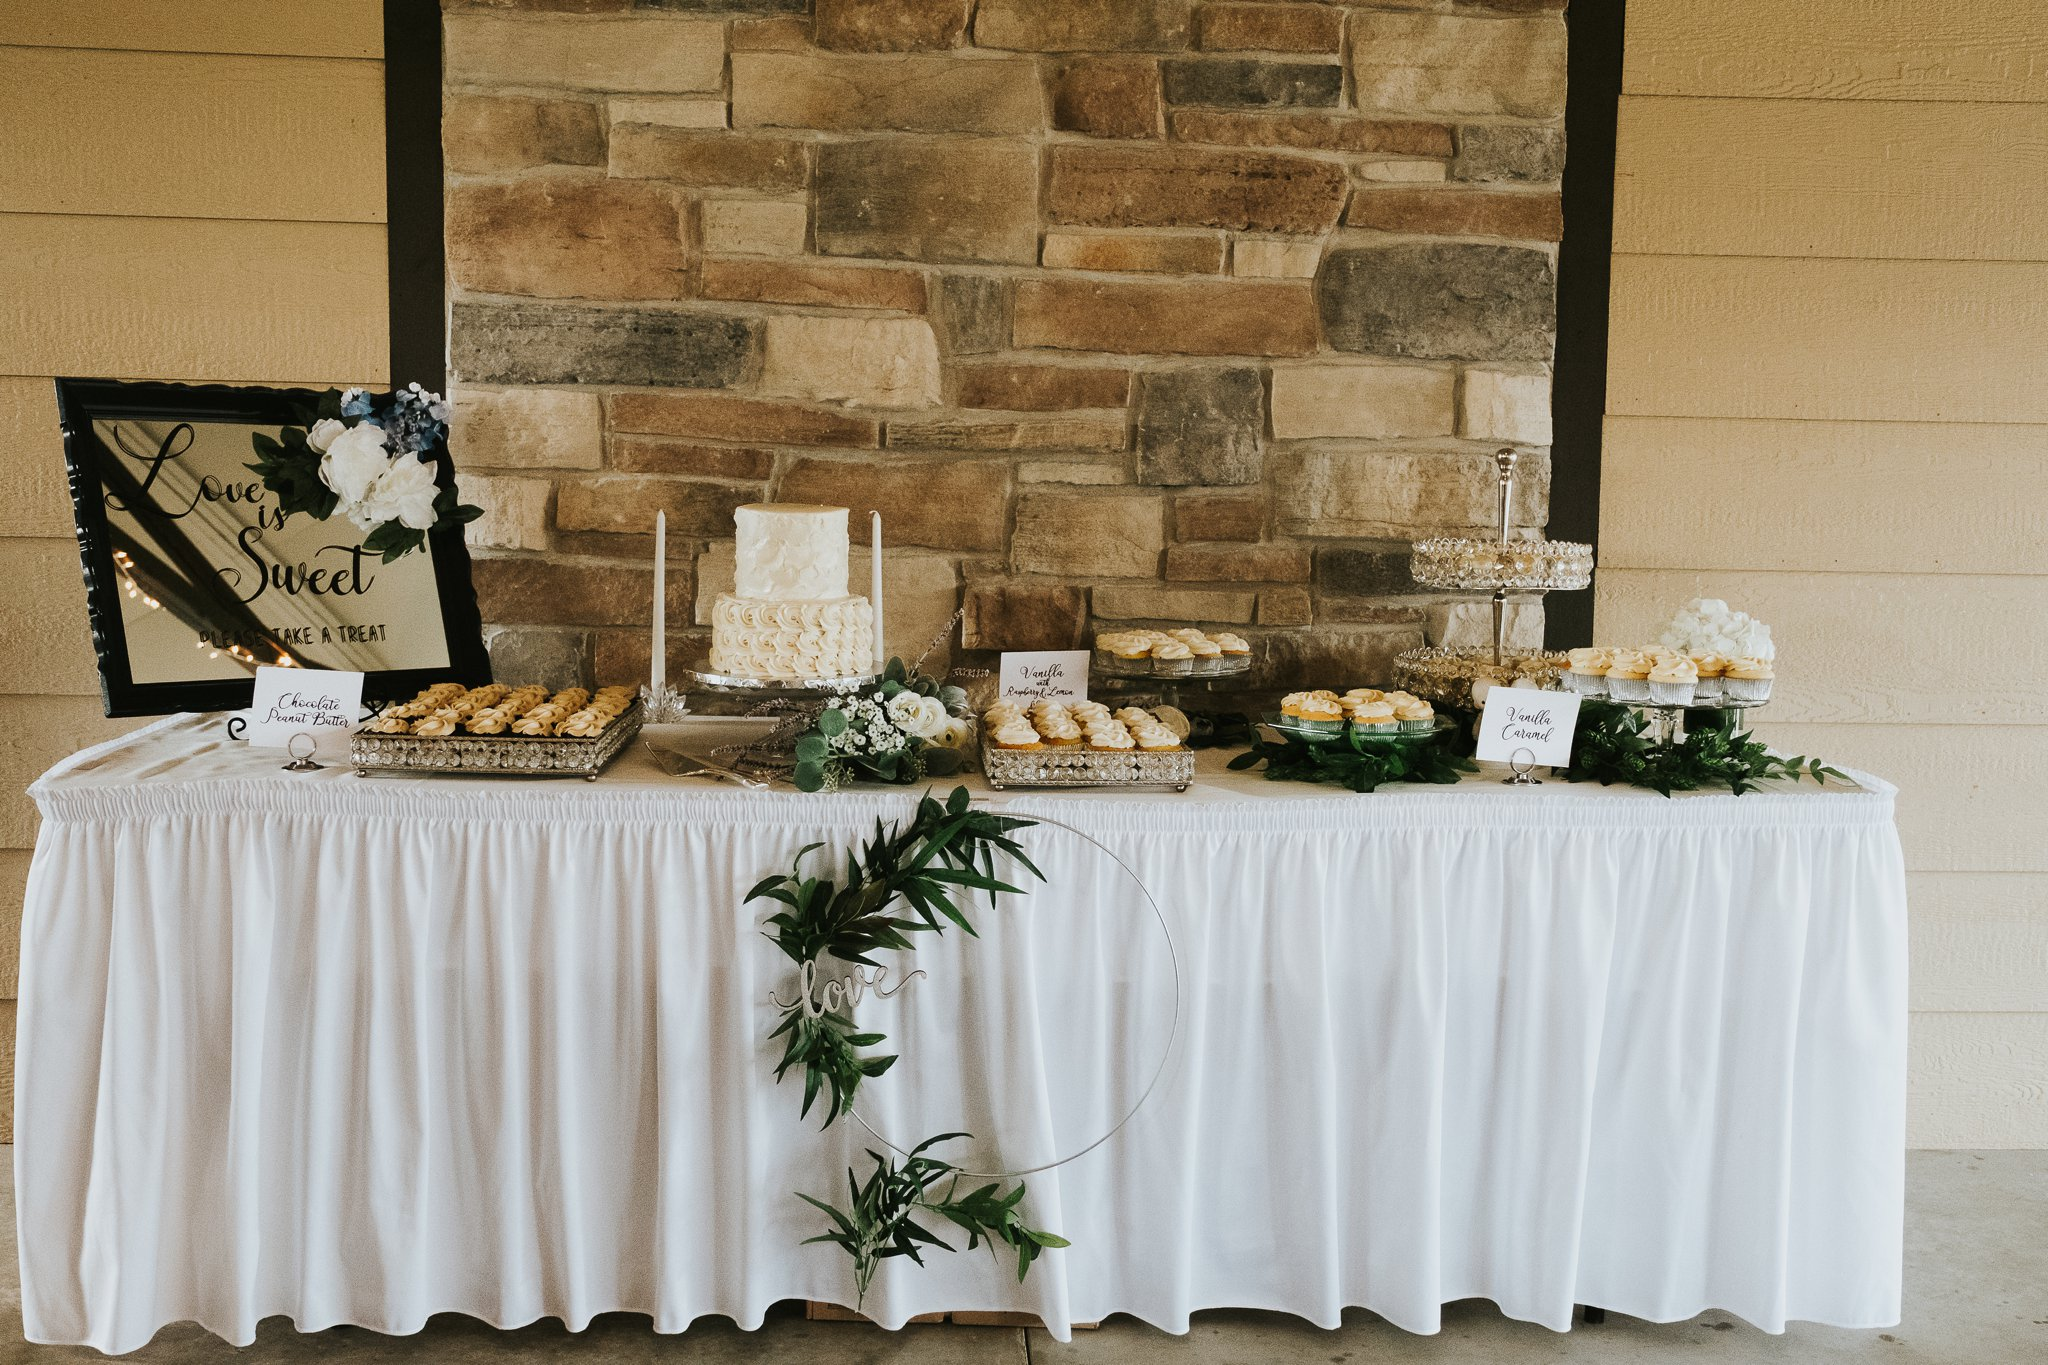 Coachmen's Golf Resort Wedding